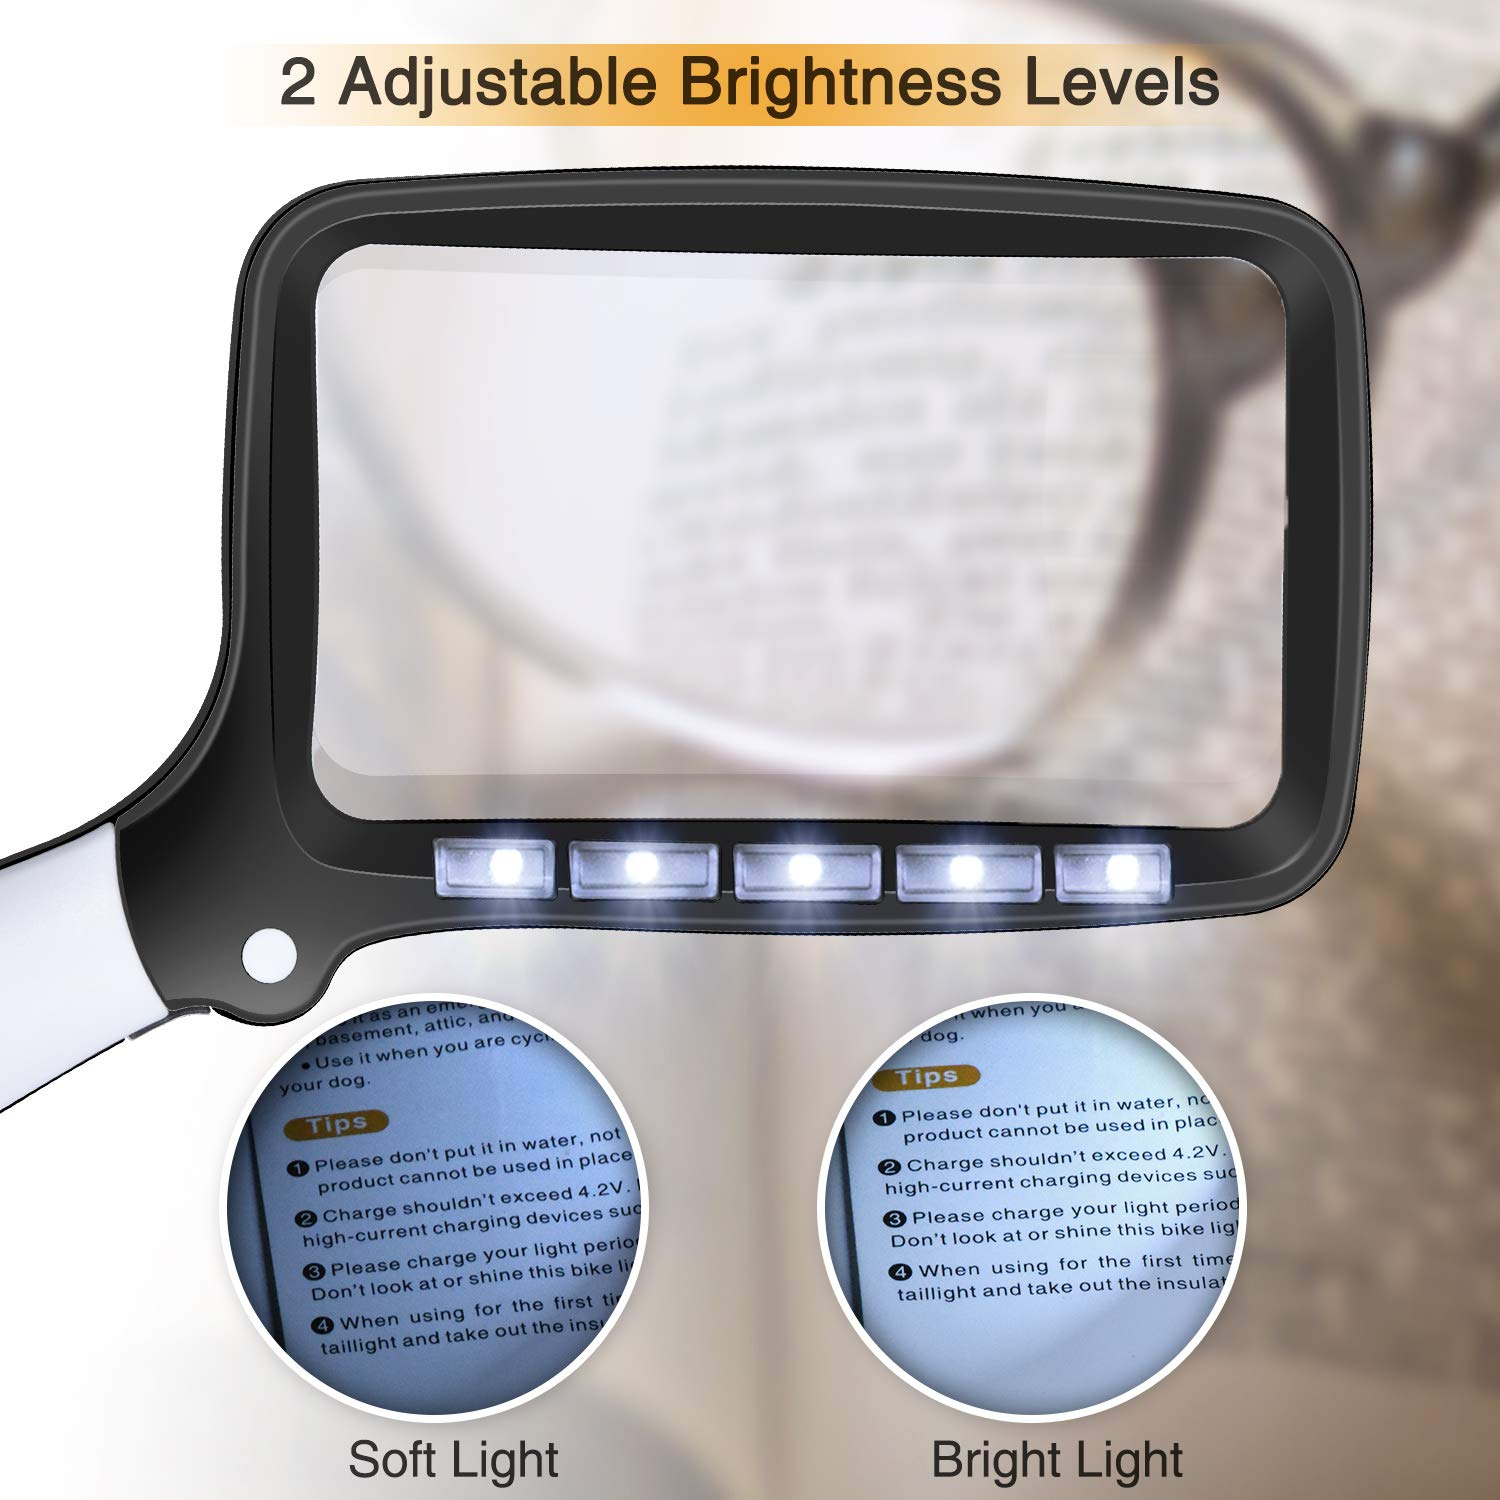 Books 2X Foldable Handheld Rectangular Reading Magnifier for Seniors Low Vision Unimi Magnifying Glass with 5 LED Lights Newspapers /& Maps Magazines Pages 2 Lighting Modes